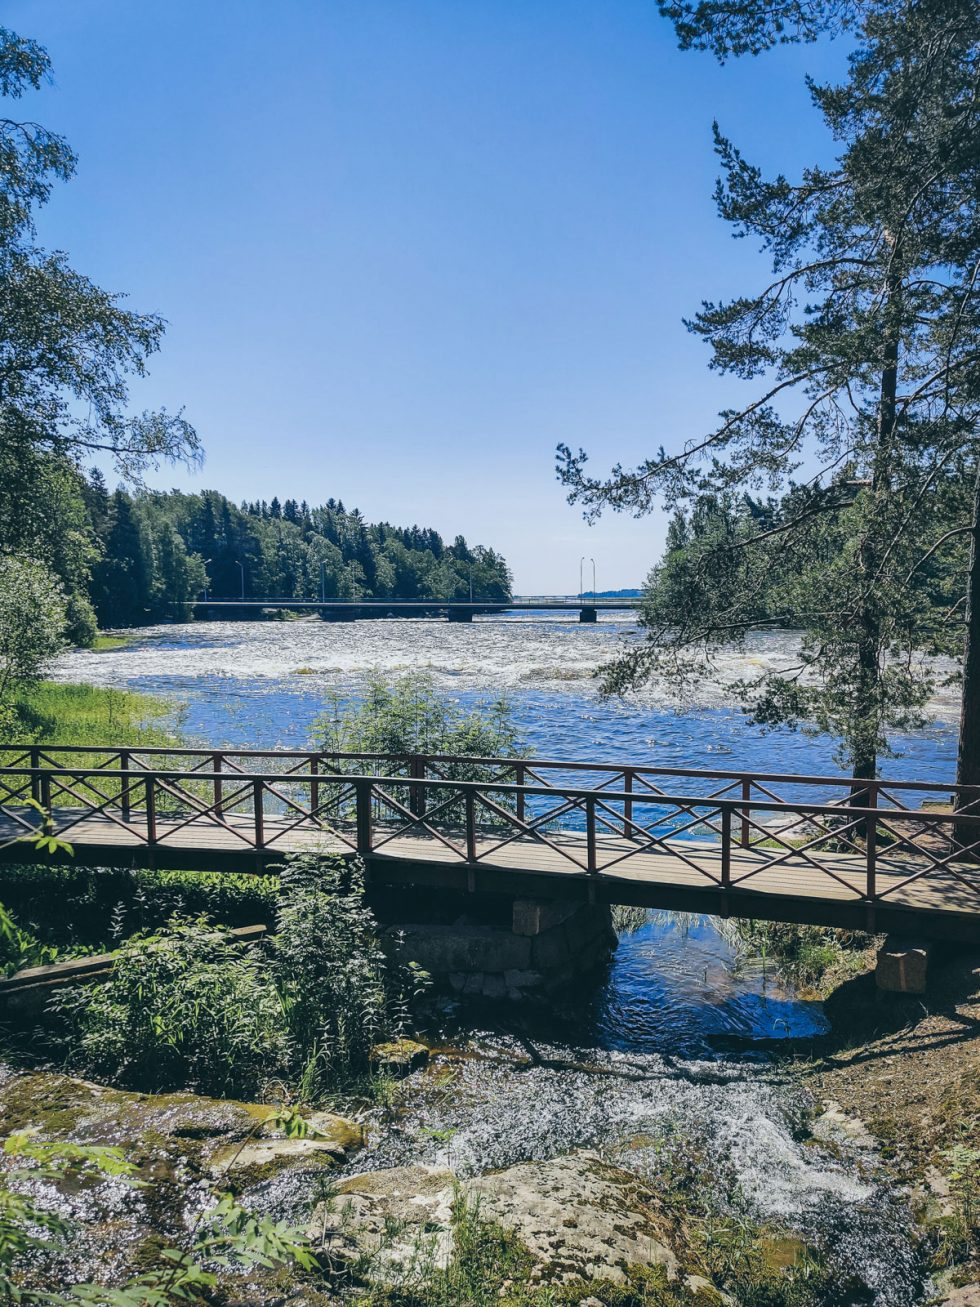 A wooden bridge going across water, surrounded by pine trees. Opens in lightbox.